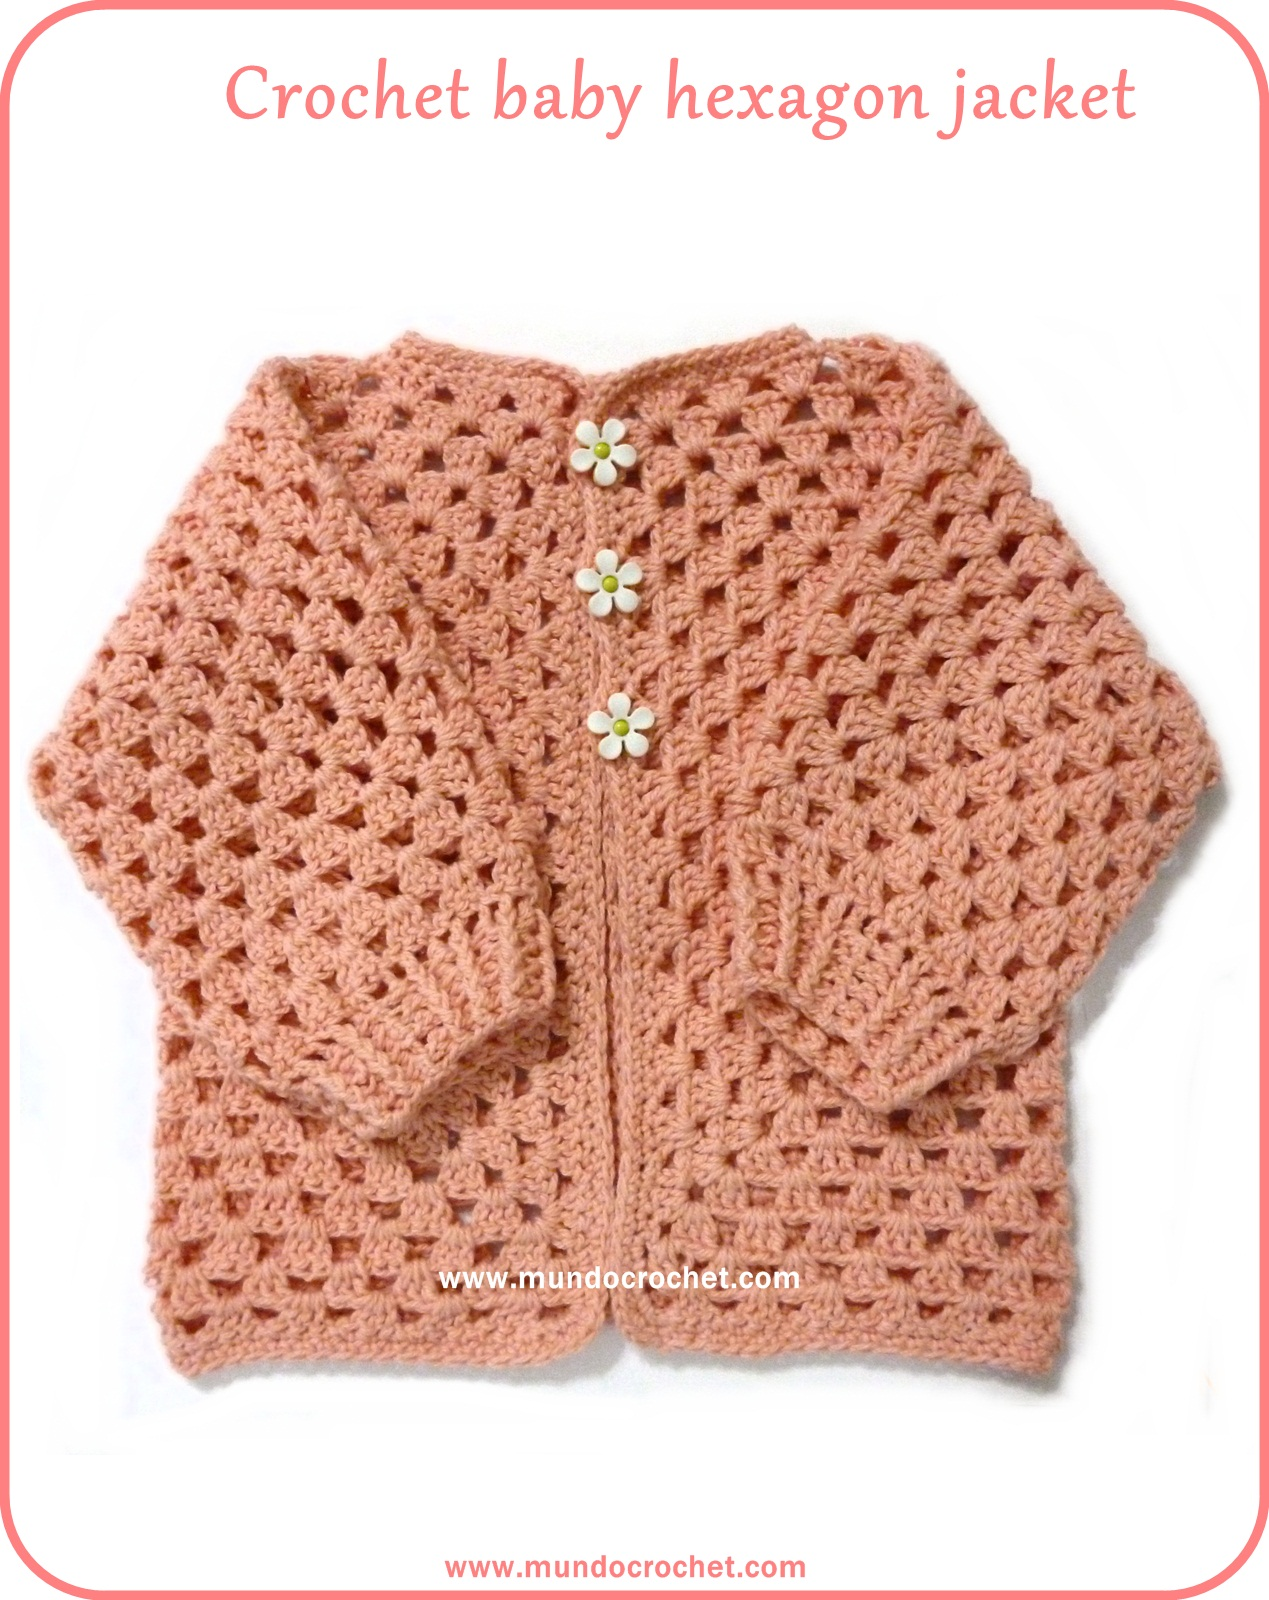 Crochet jacket pattern for beginners squareone for crochet hexagon jacket crochet hexagon sweater crochet jacket pattern for beginners bankloansurffo Image collections